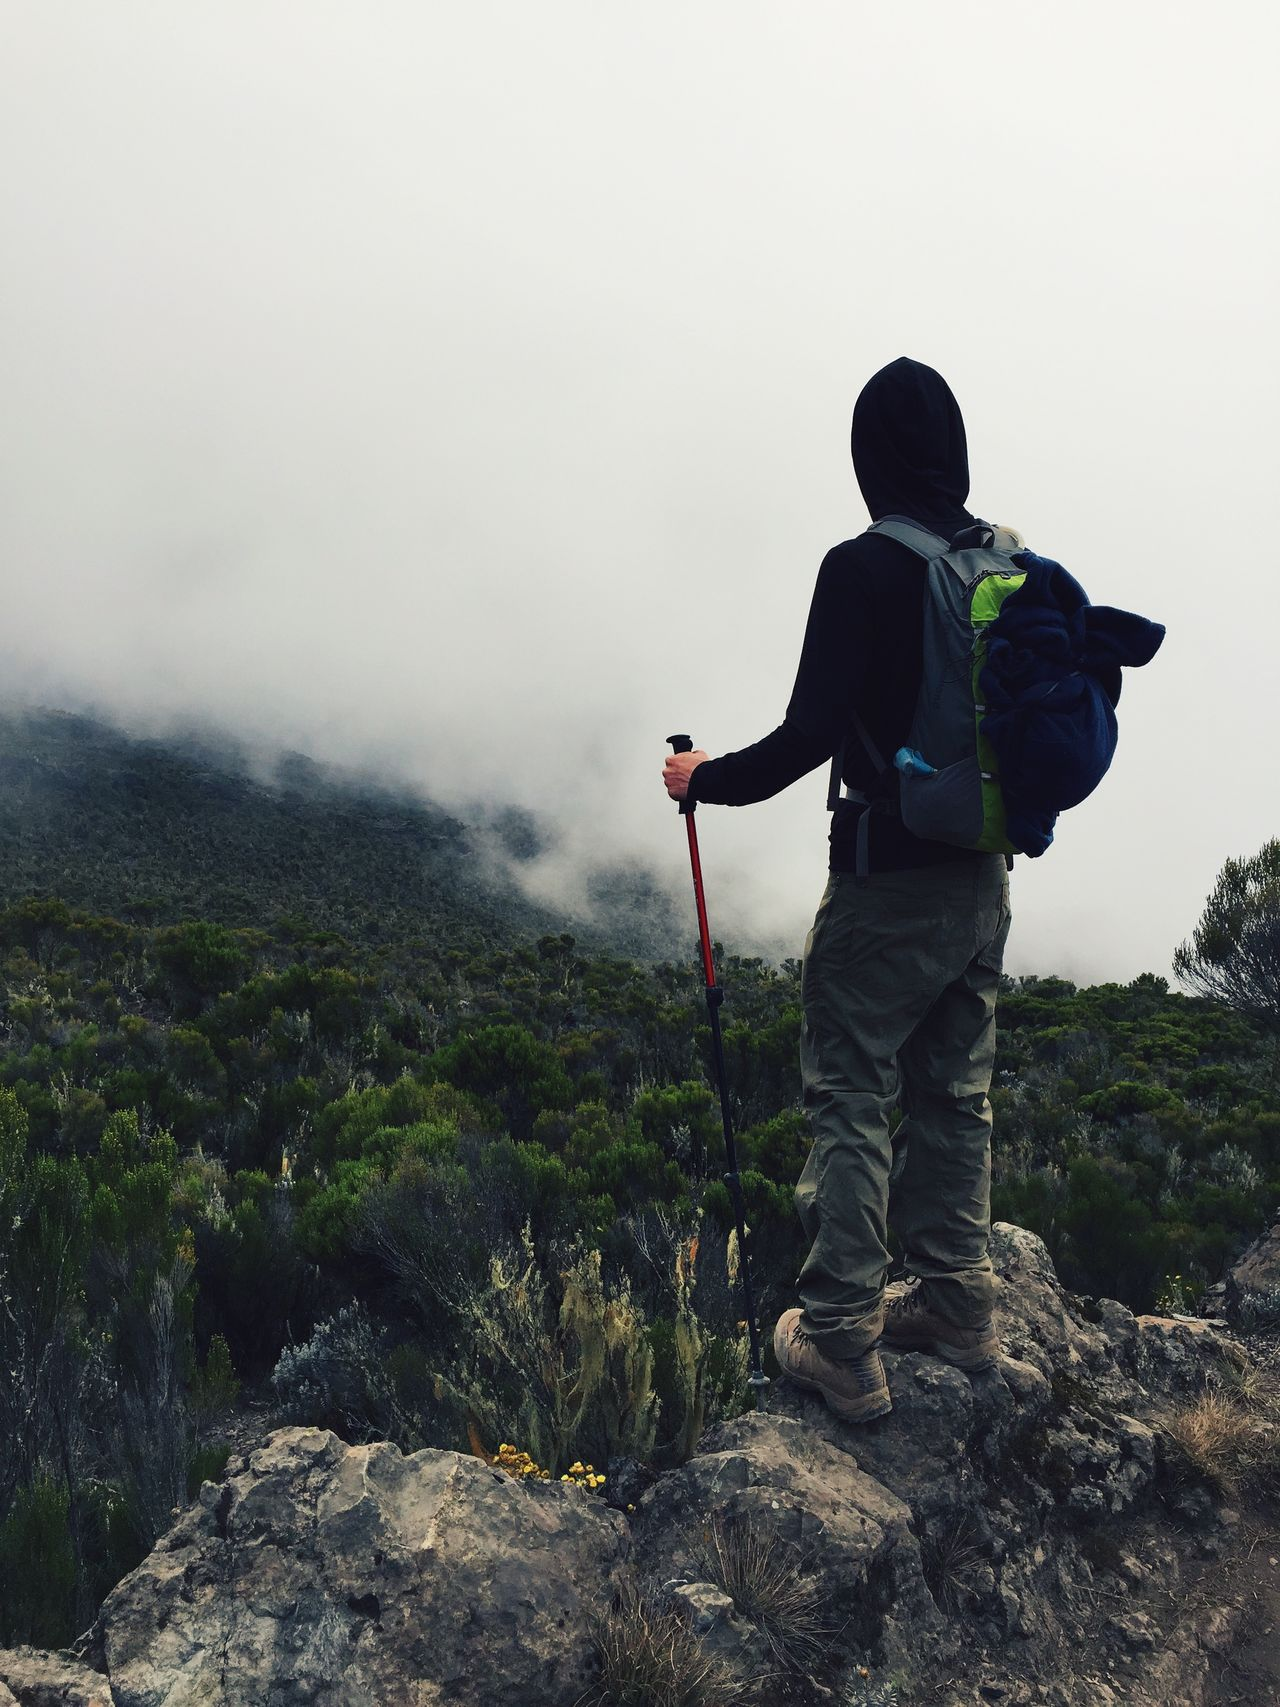 Adventure Backpack Beauty In Nature Casual Clothing Cloud - Sky Day Full Length Hiking Hill Landscape Leisure Activity Lifestyles Mountain Nature Non-urban Scene Outdoors Plant Rock - Object Scenics Sky Standing Tranquil Scene Tranquility Warm Clothing Weather